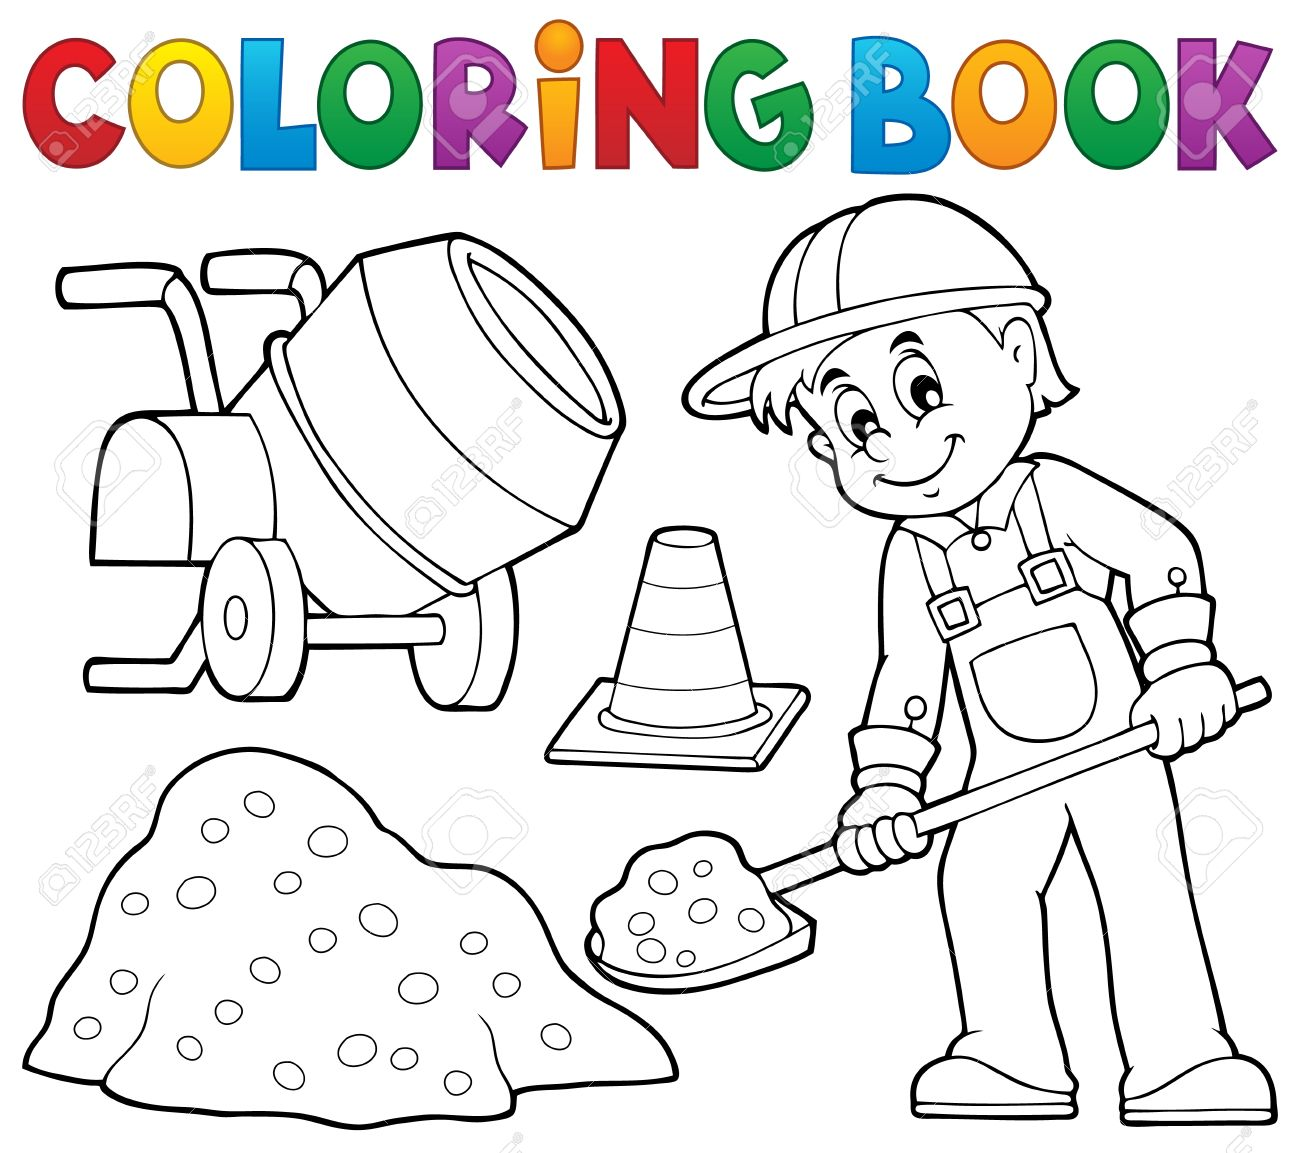 Coloring Book Construction Worker 2 - Vector Illustration. Royalty ...